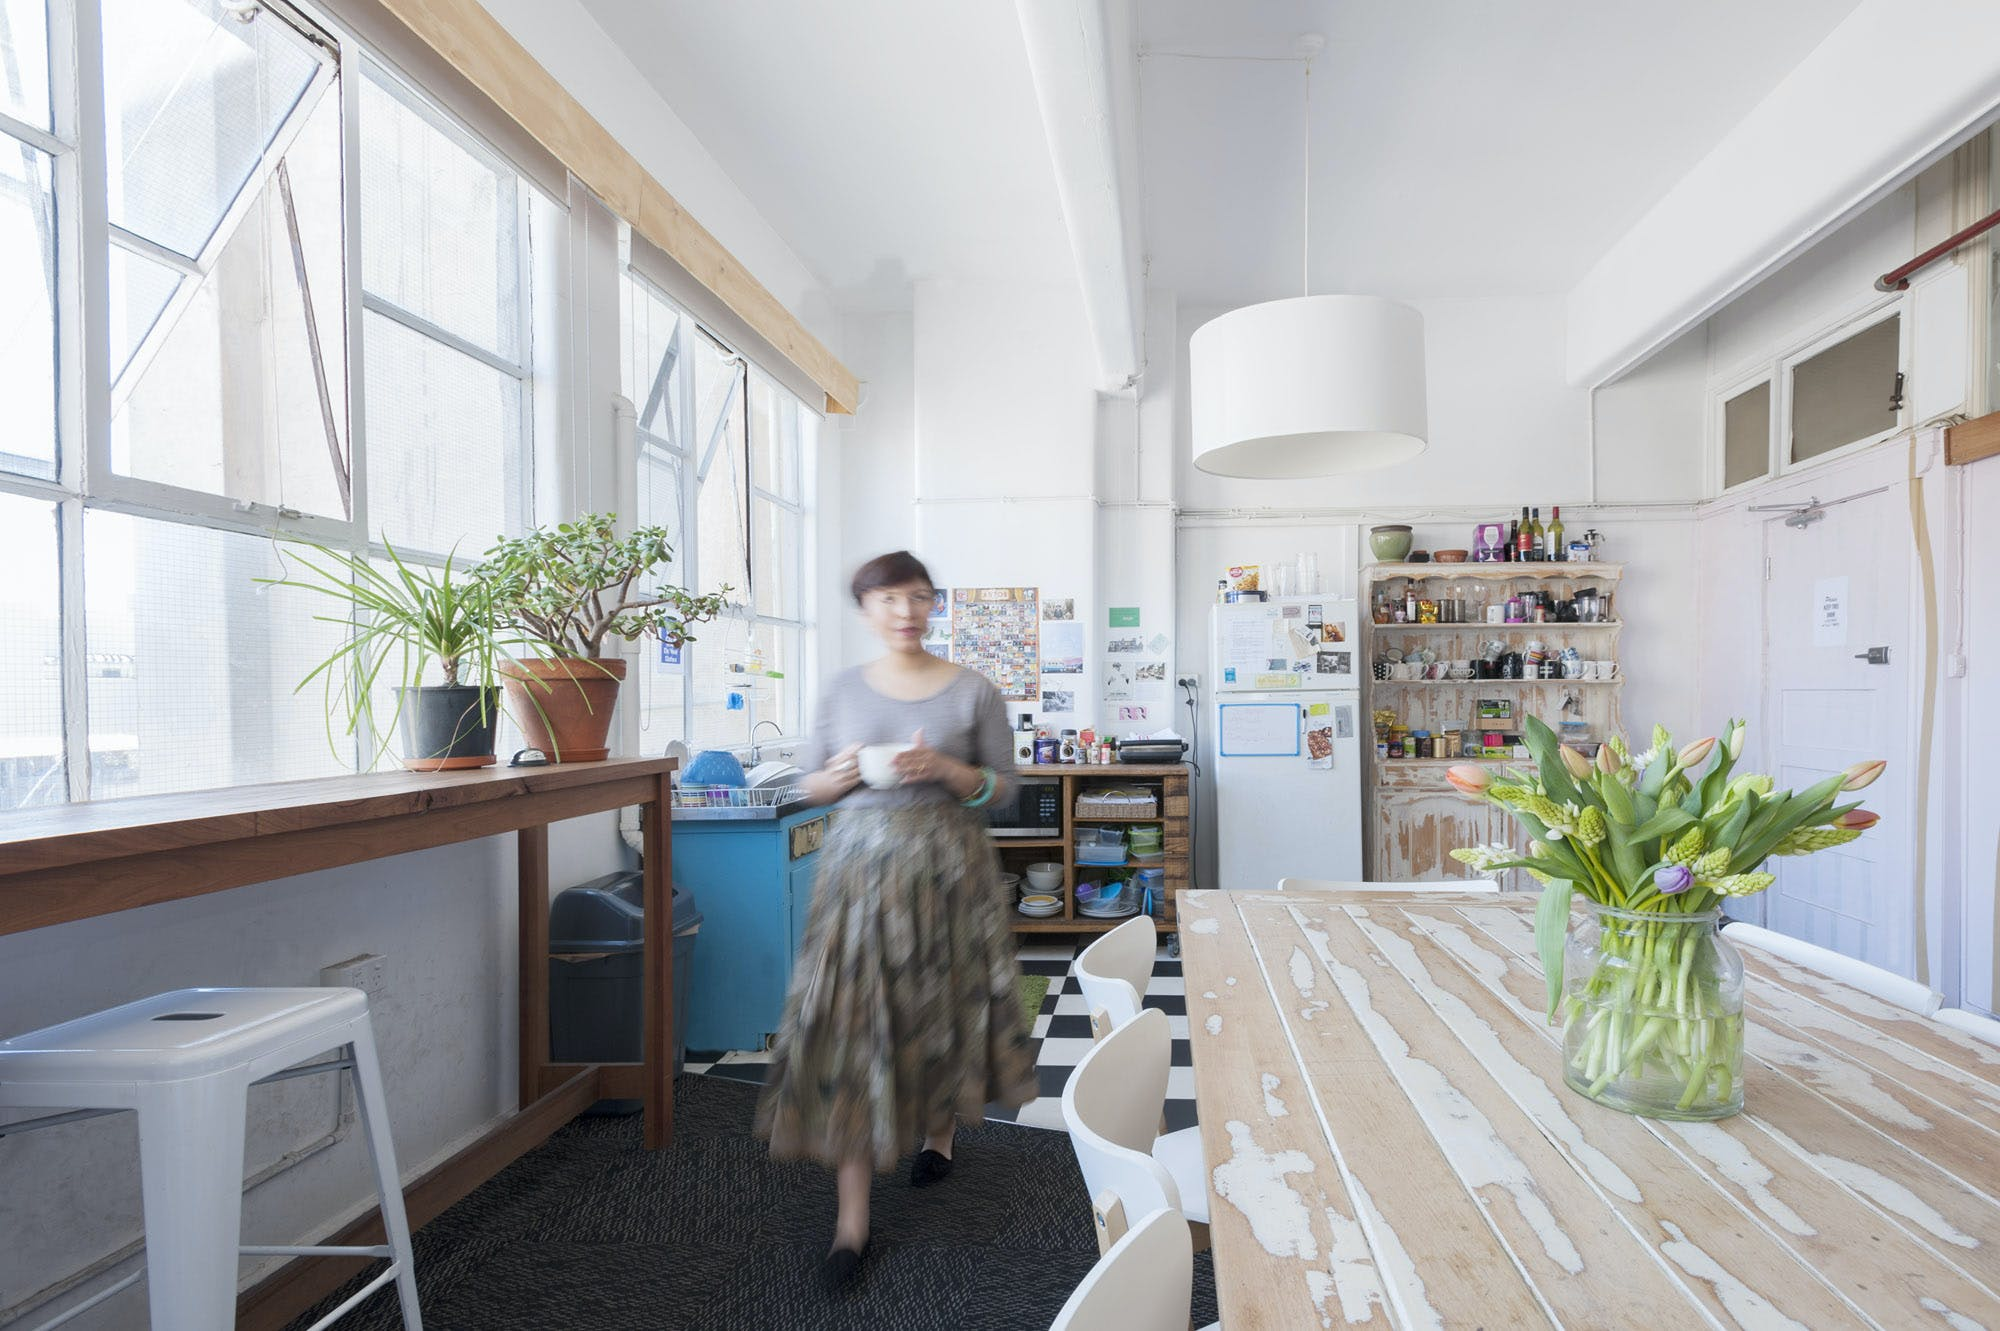 Chantilly Studio, coworking at The Nicholson Building, image 1